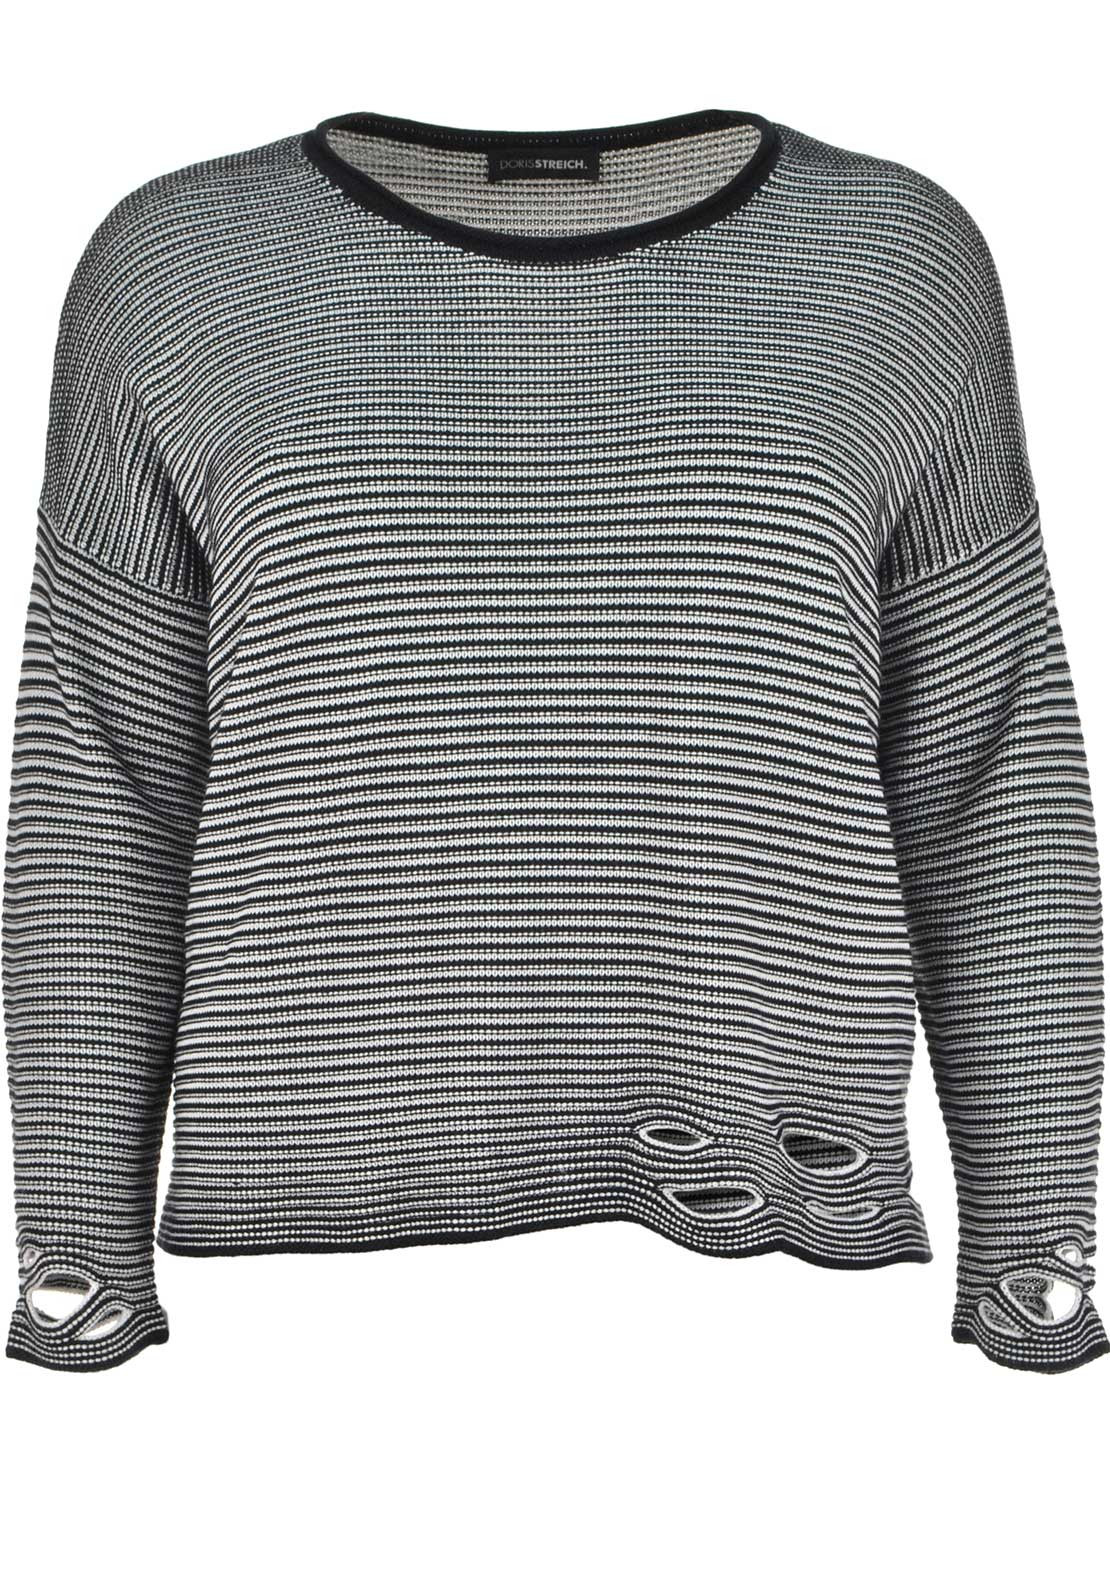 Doris Streich Striped Fine Knit Oversize Sweater Jumper, Navy and White